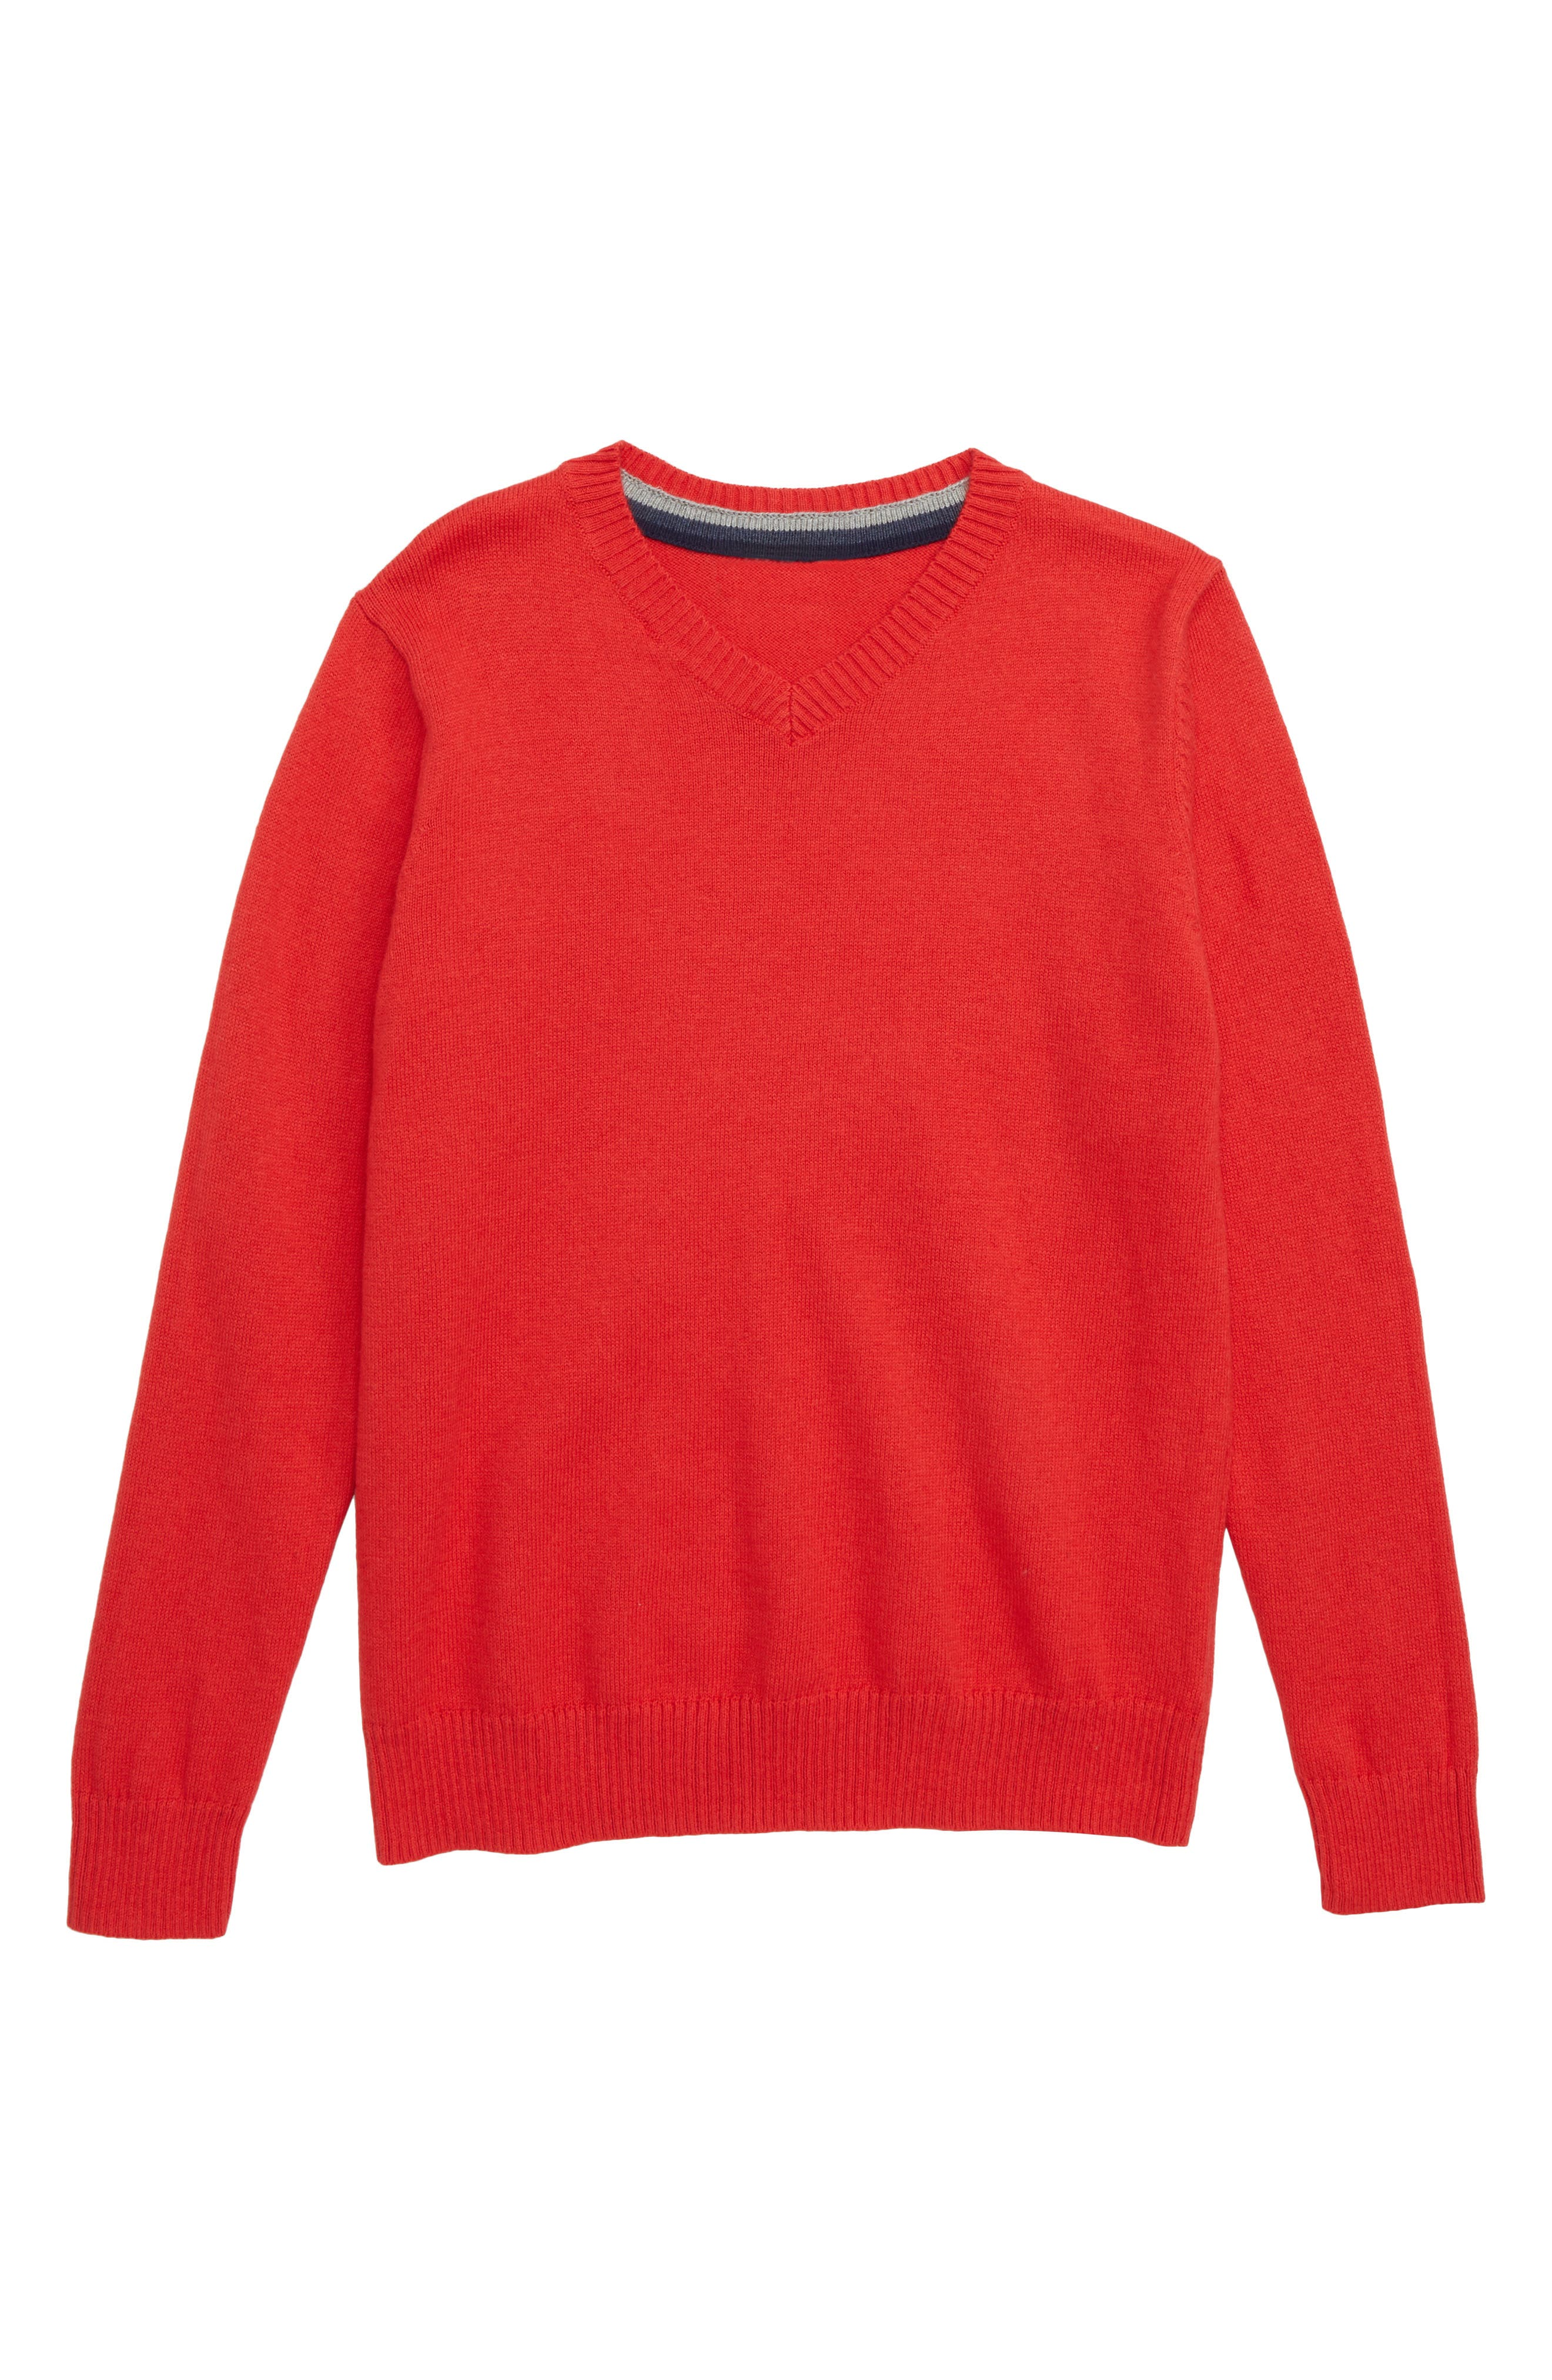 Boys Tucker  Tate VNeck Sweater Size XL (1416)  Red